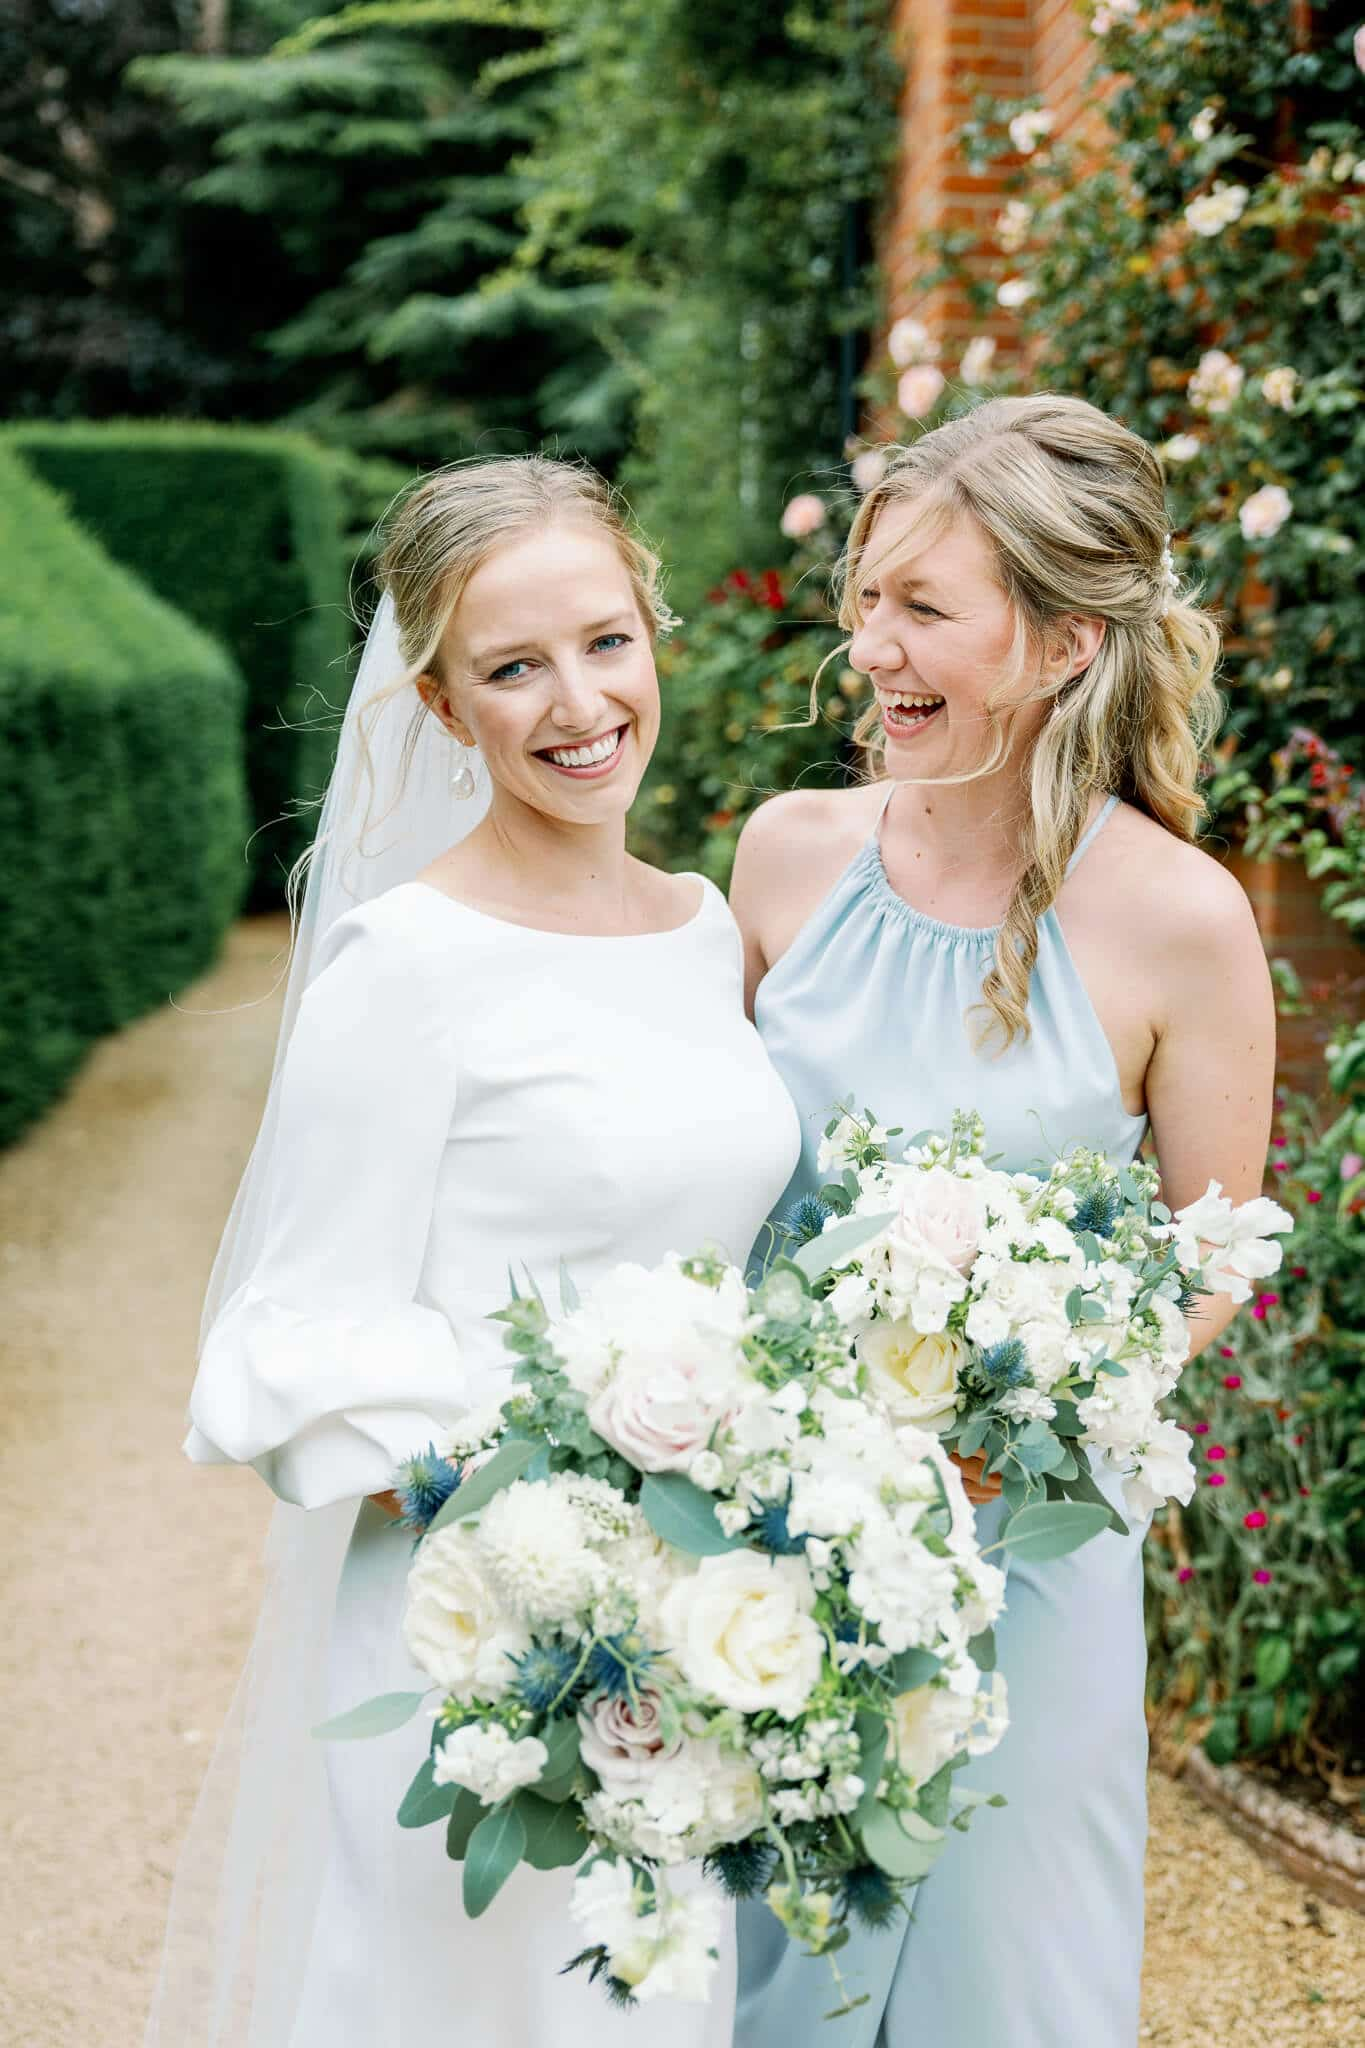 Lains Barn wedding photos of bride with maid of honour